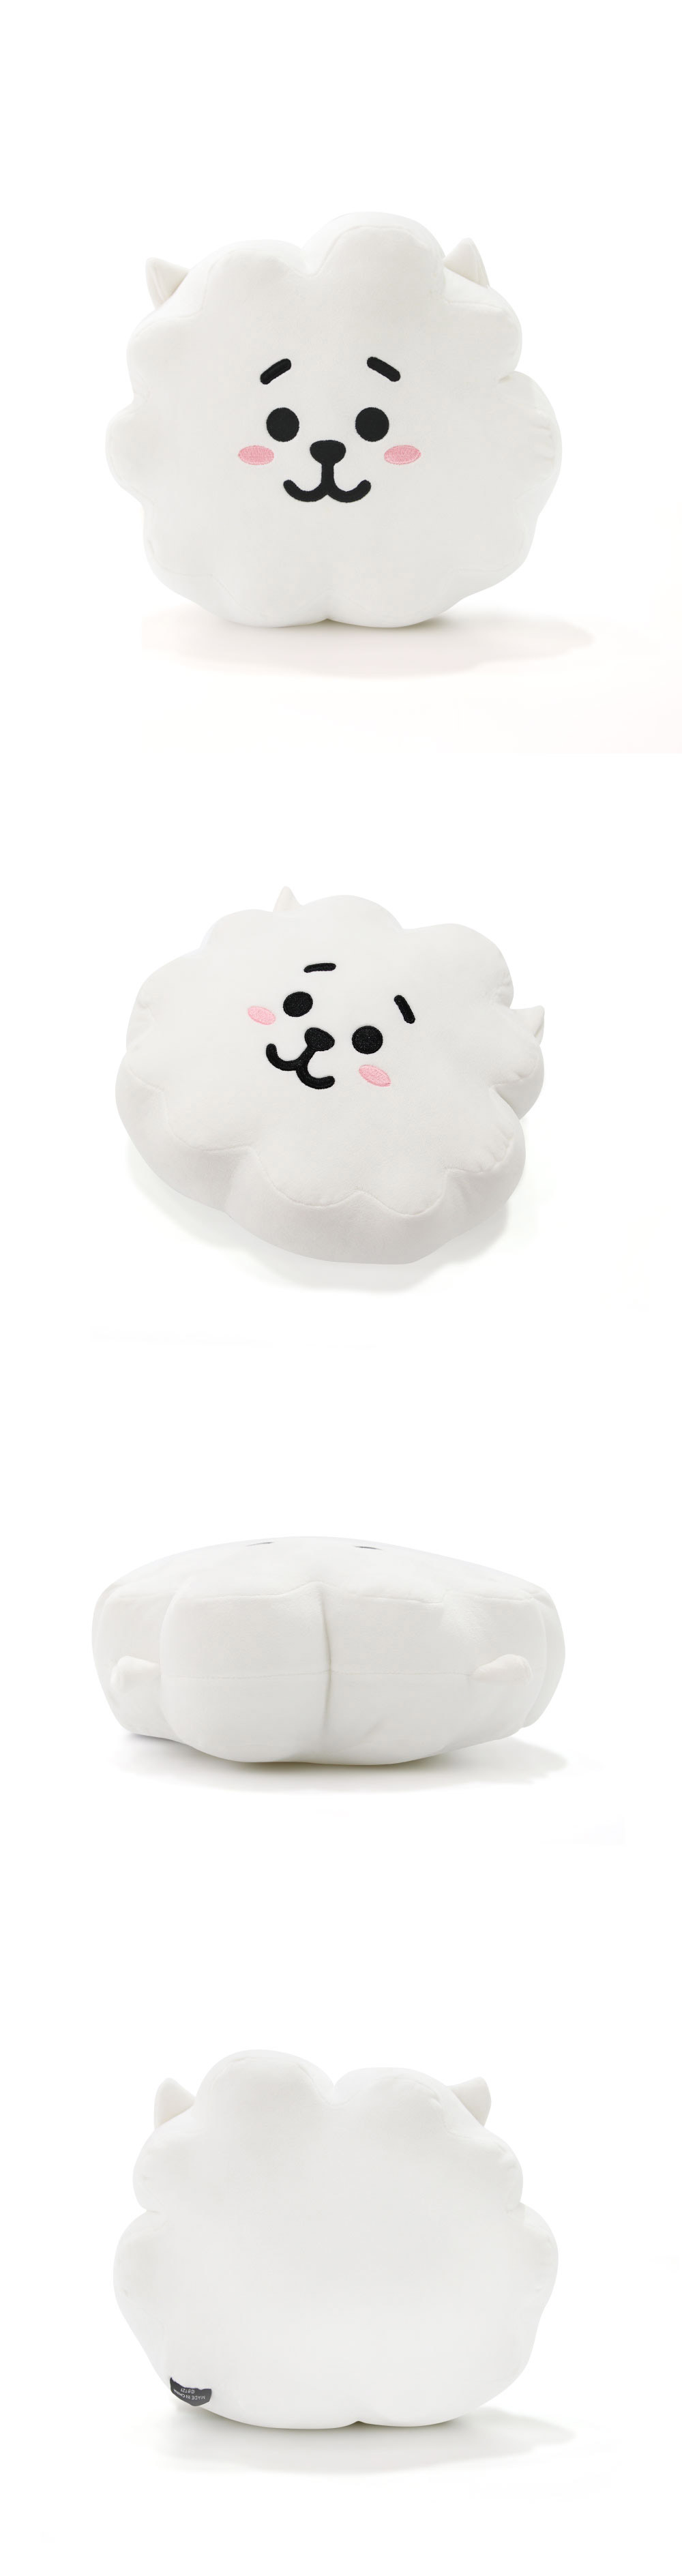 BTS BT21 Official Authentic Goods Cube Cushion by Home Plus Tracking Number